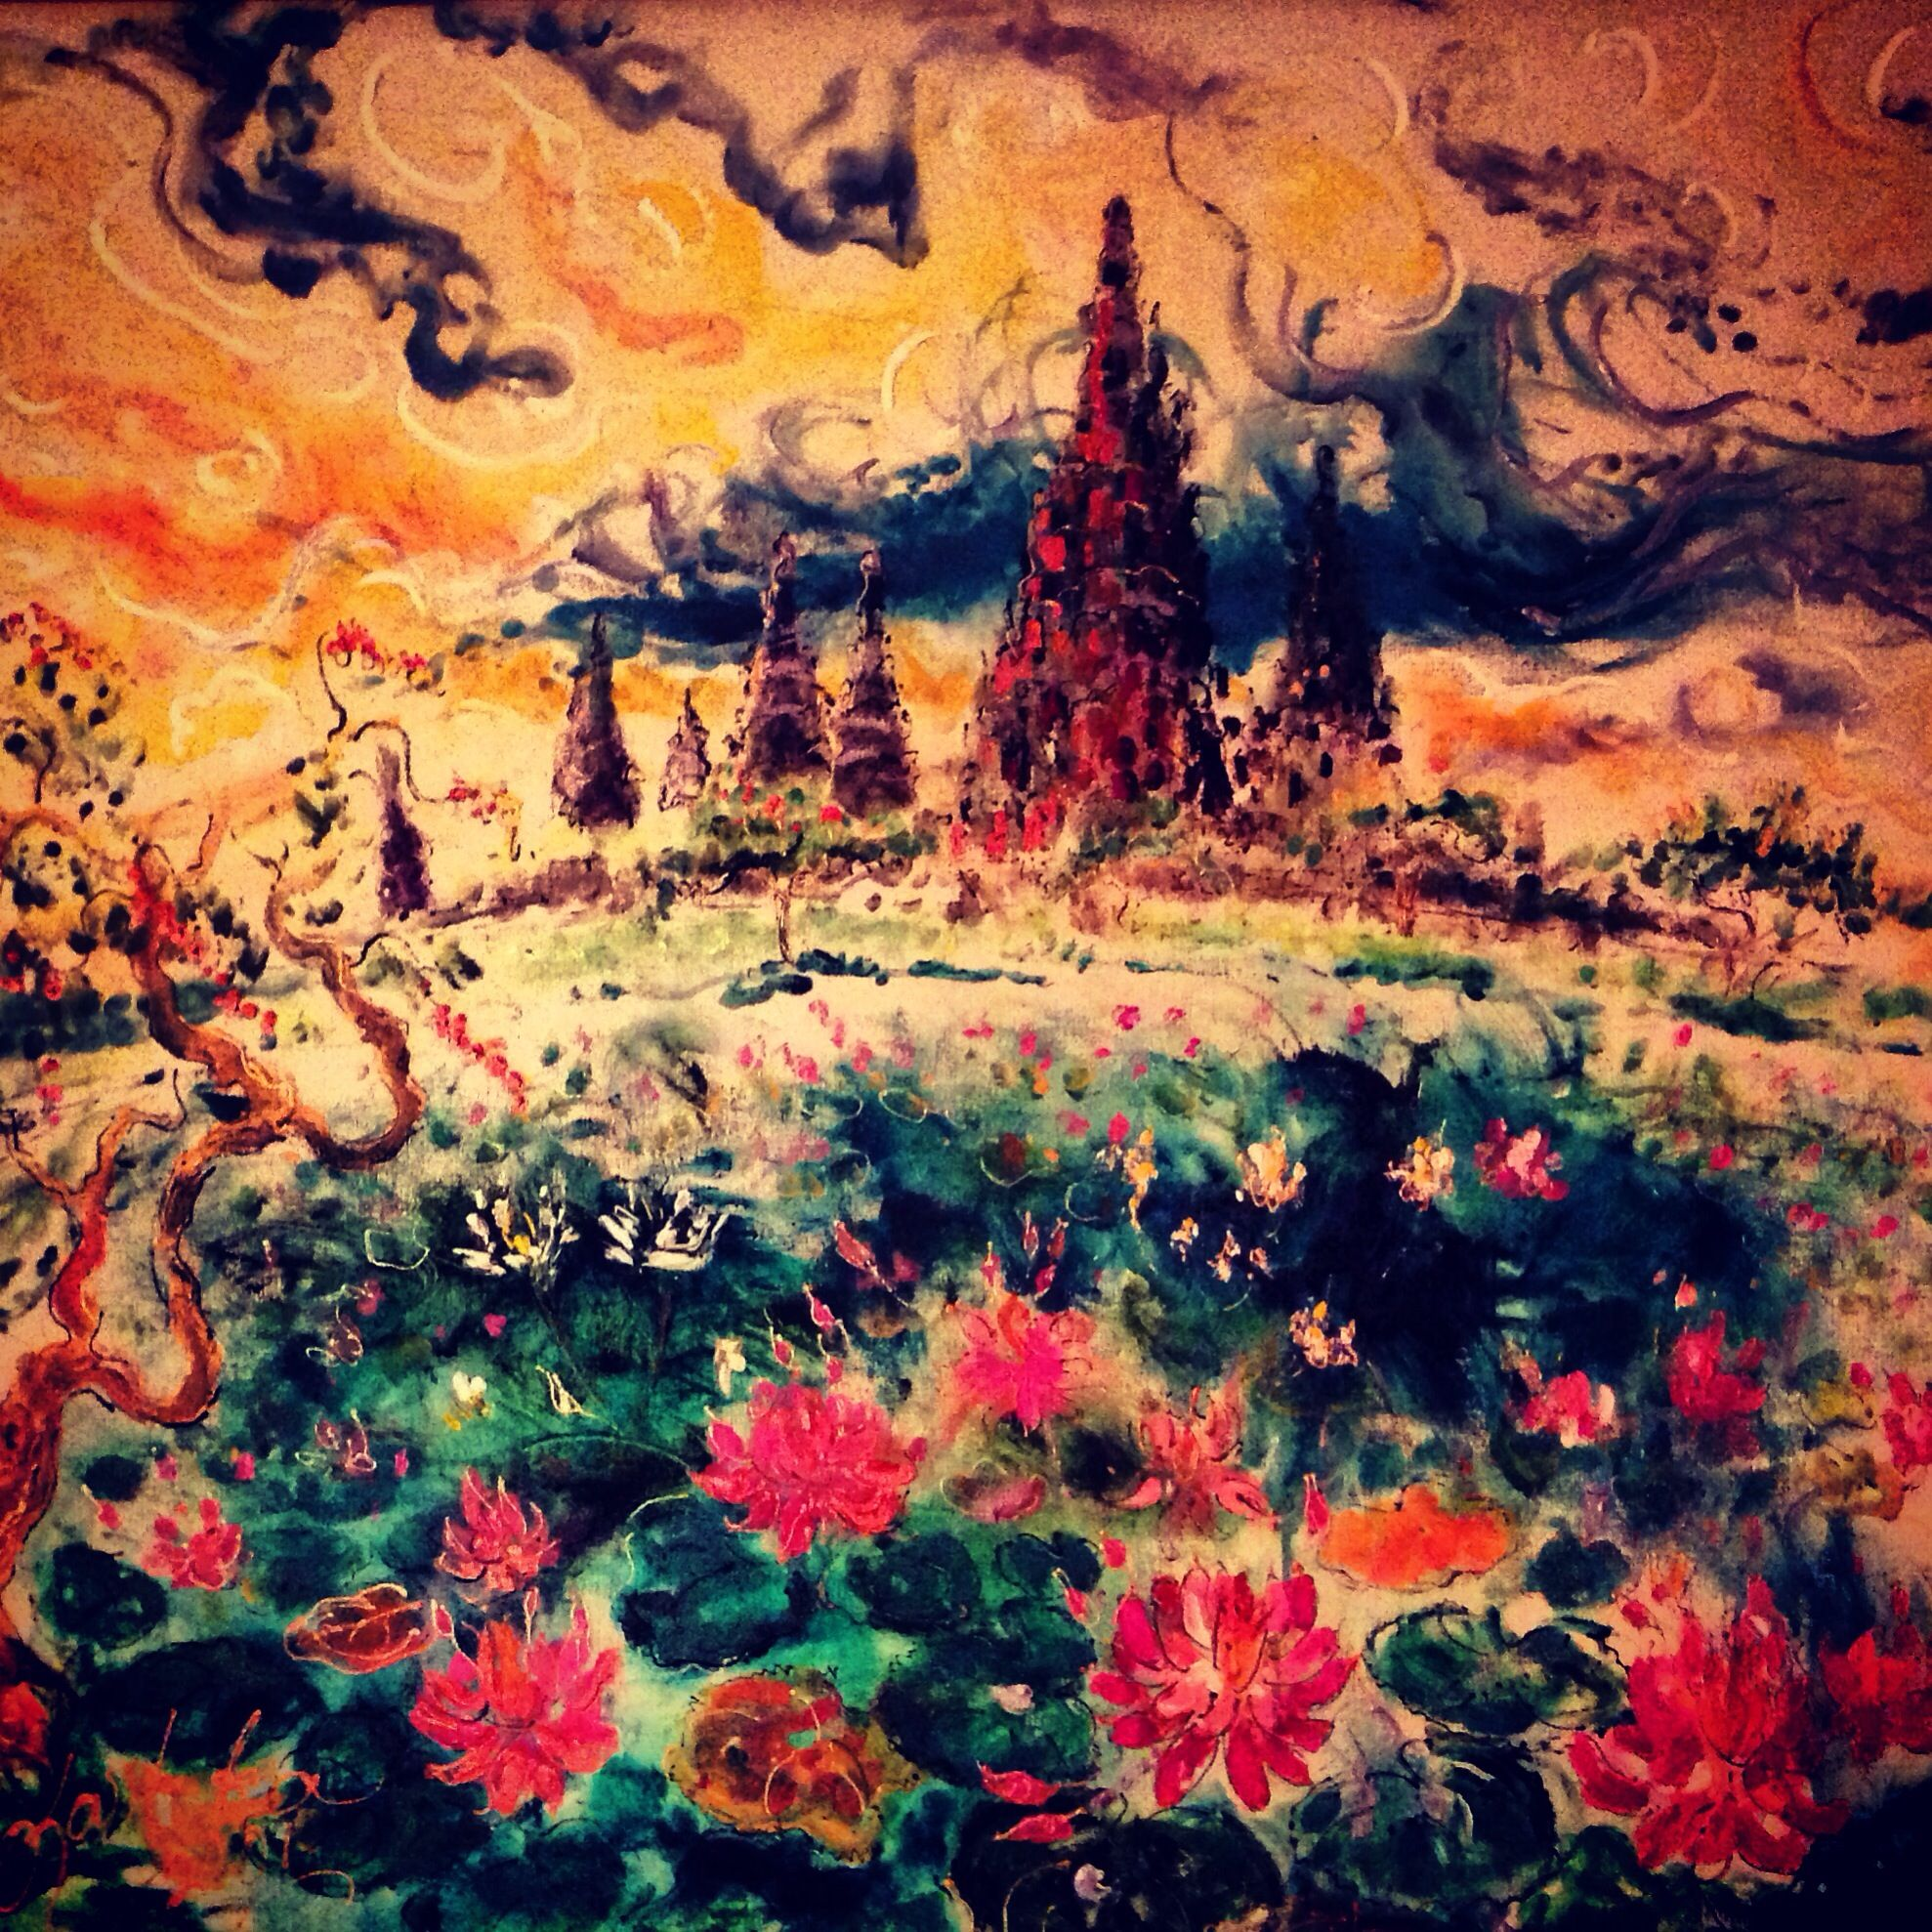 art painting. A temple in Indonesia painted by Kartika